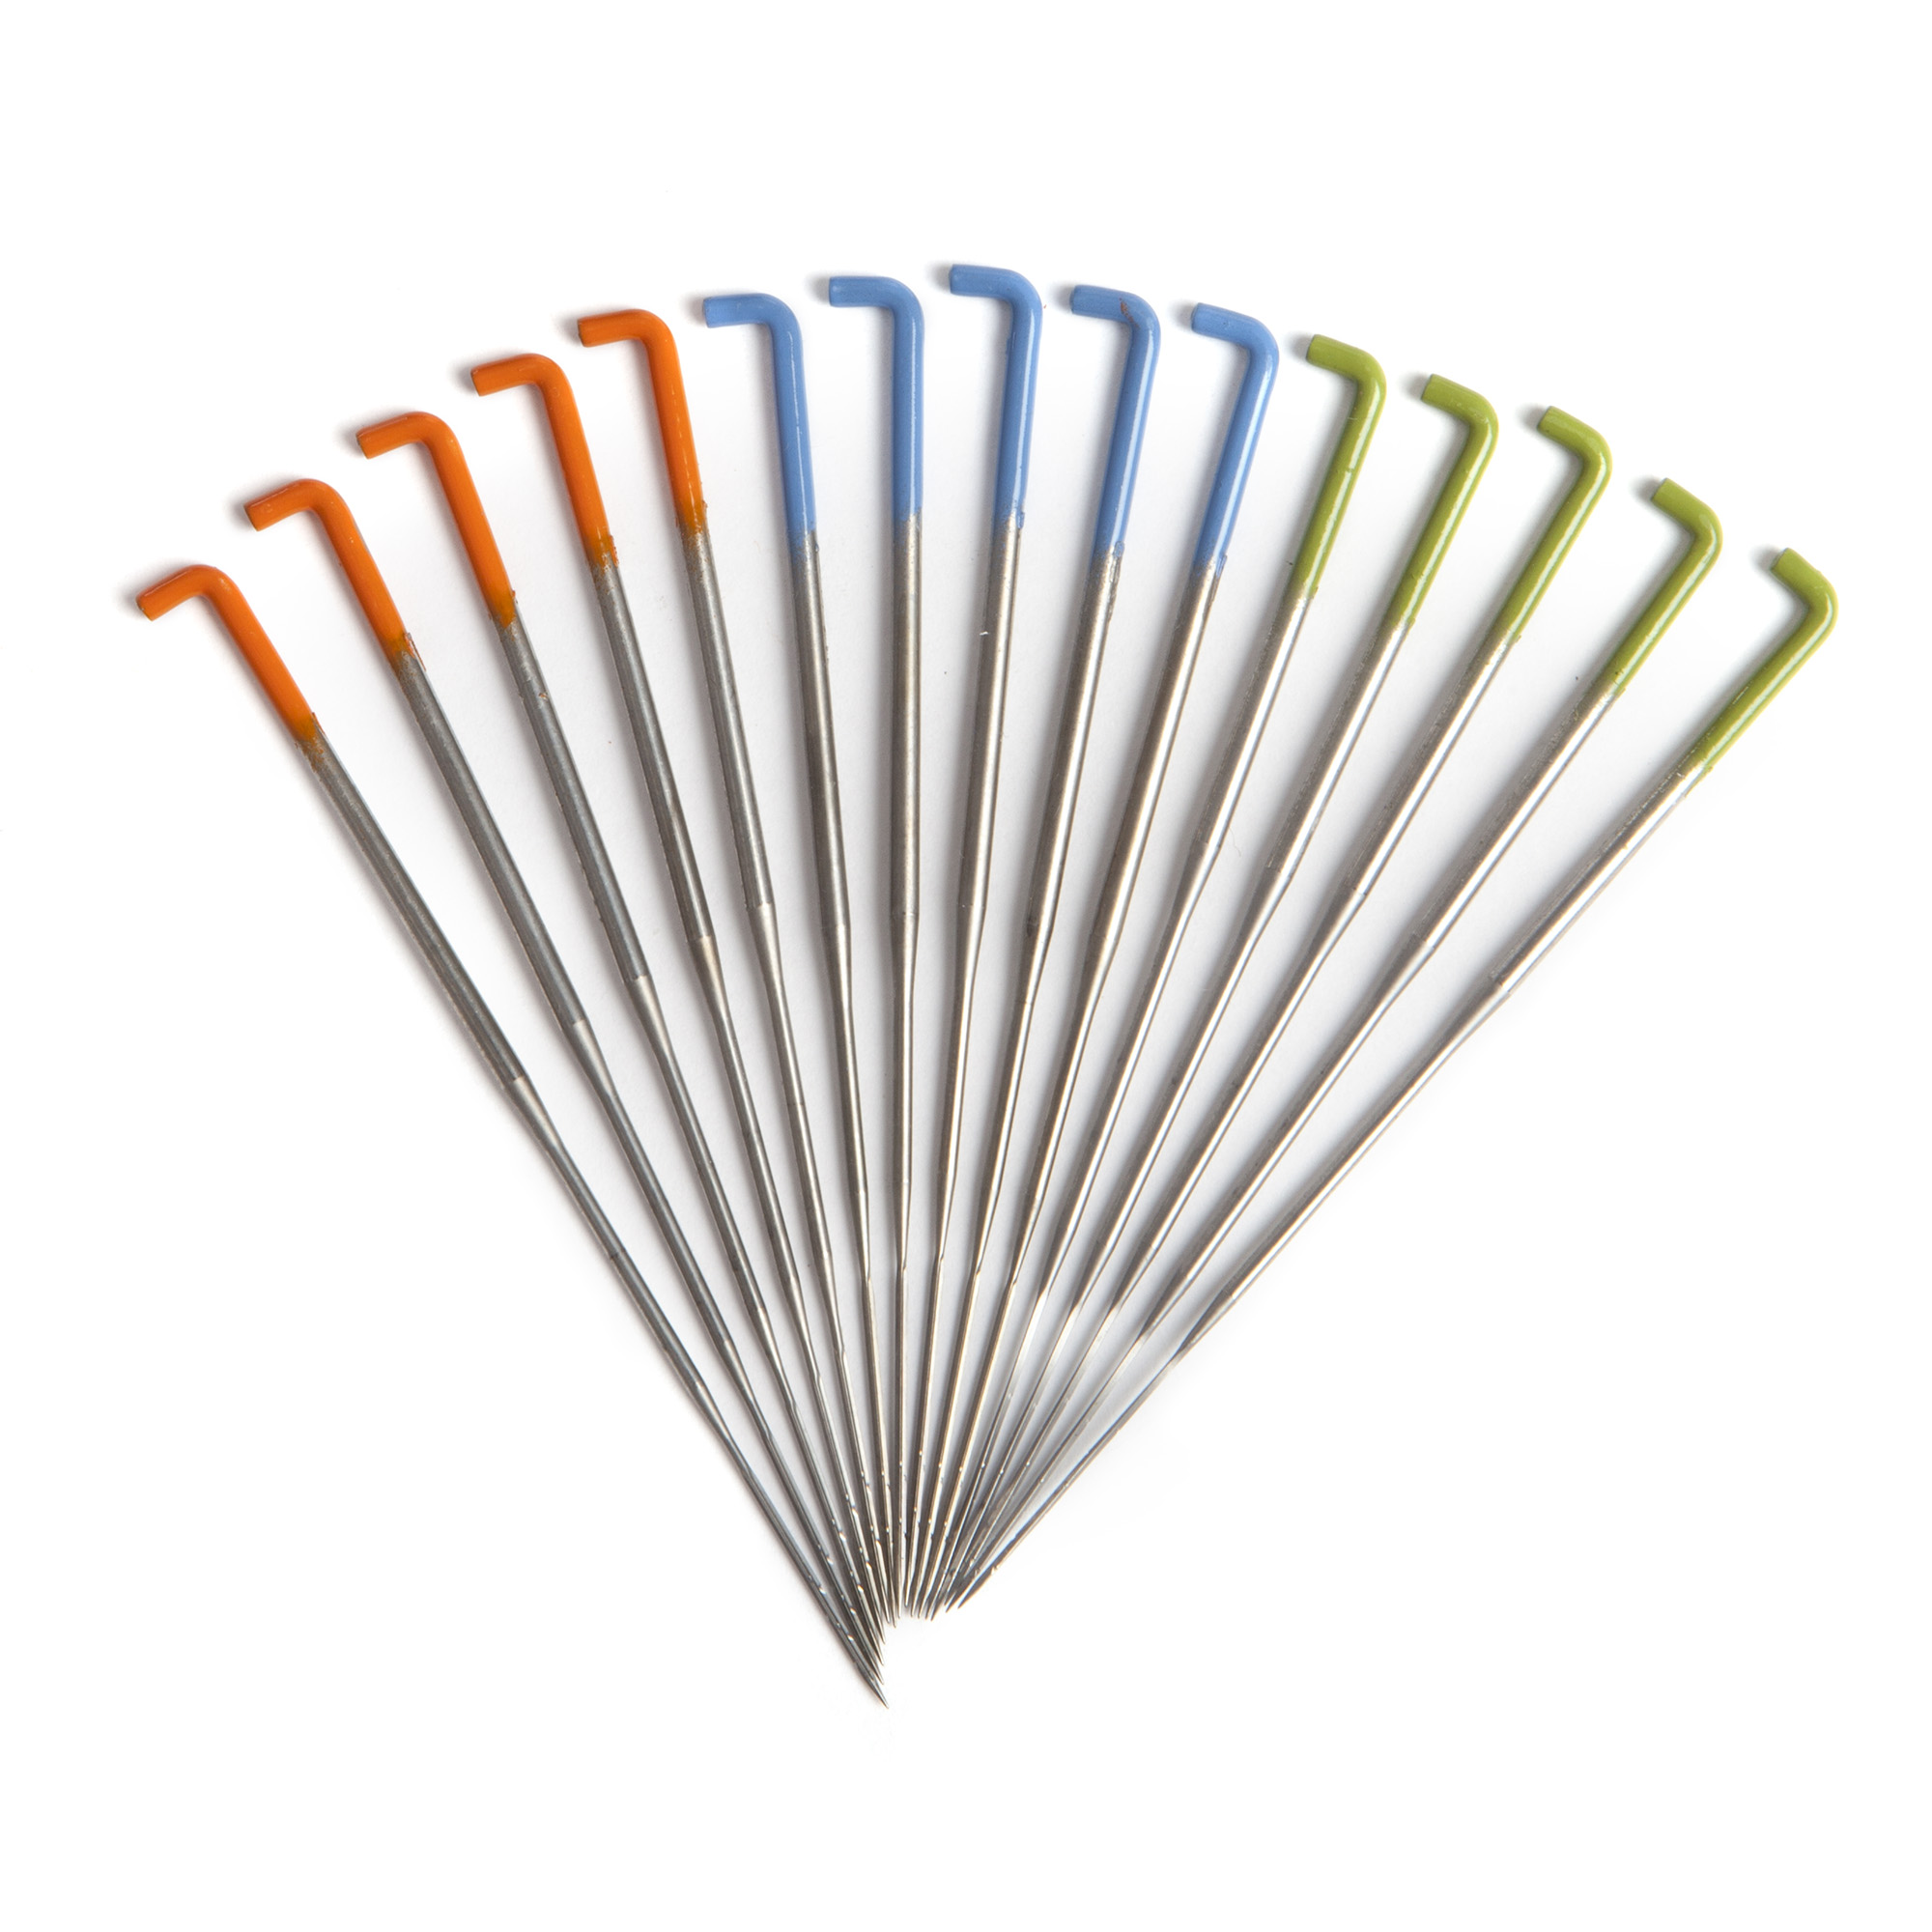 felting-needles-german-made-3.jpg